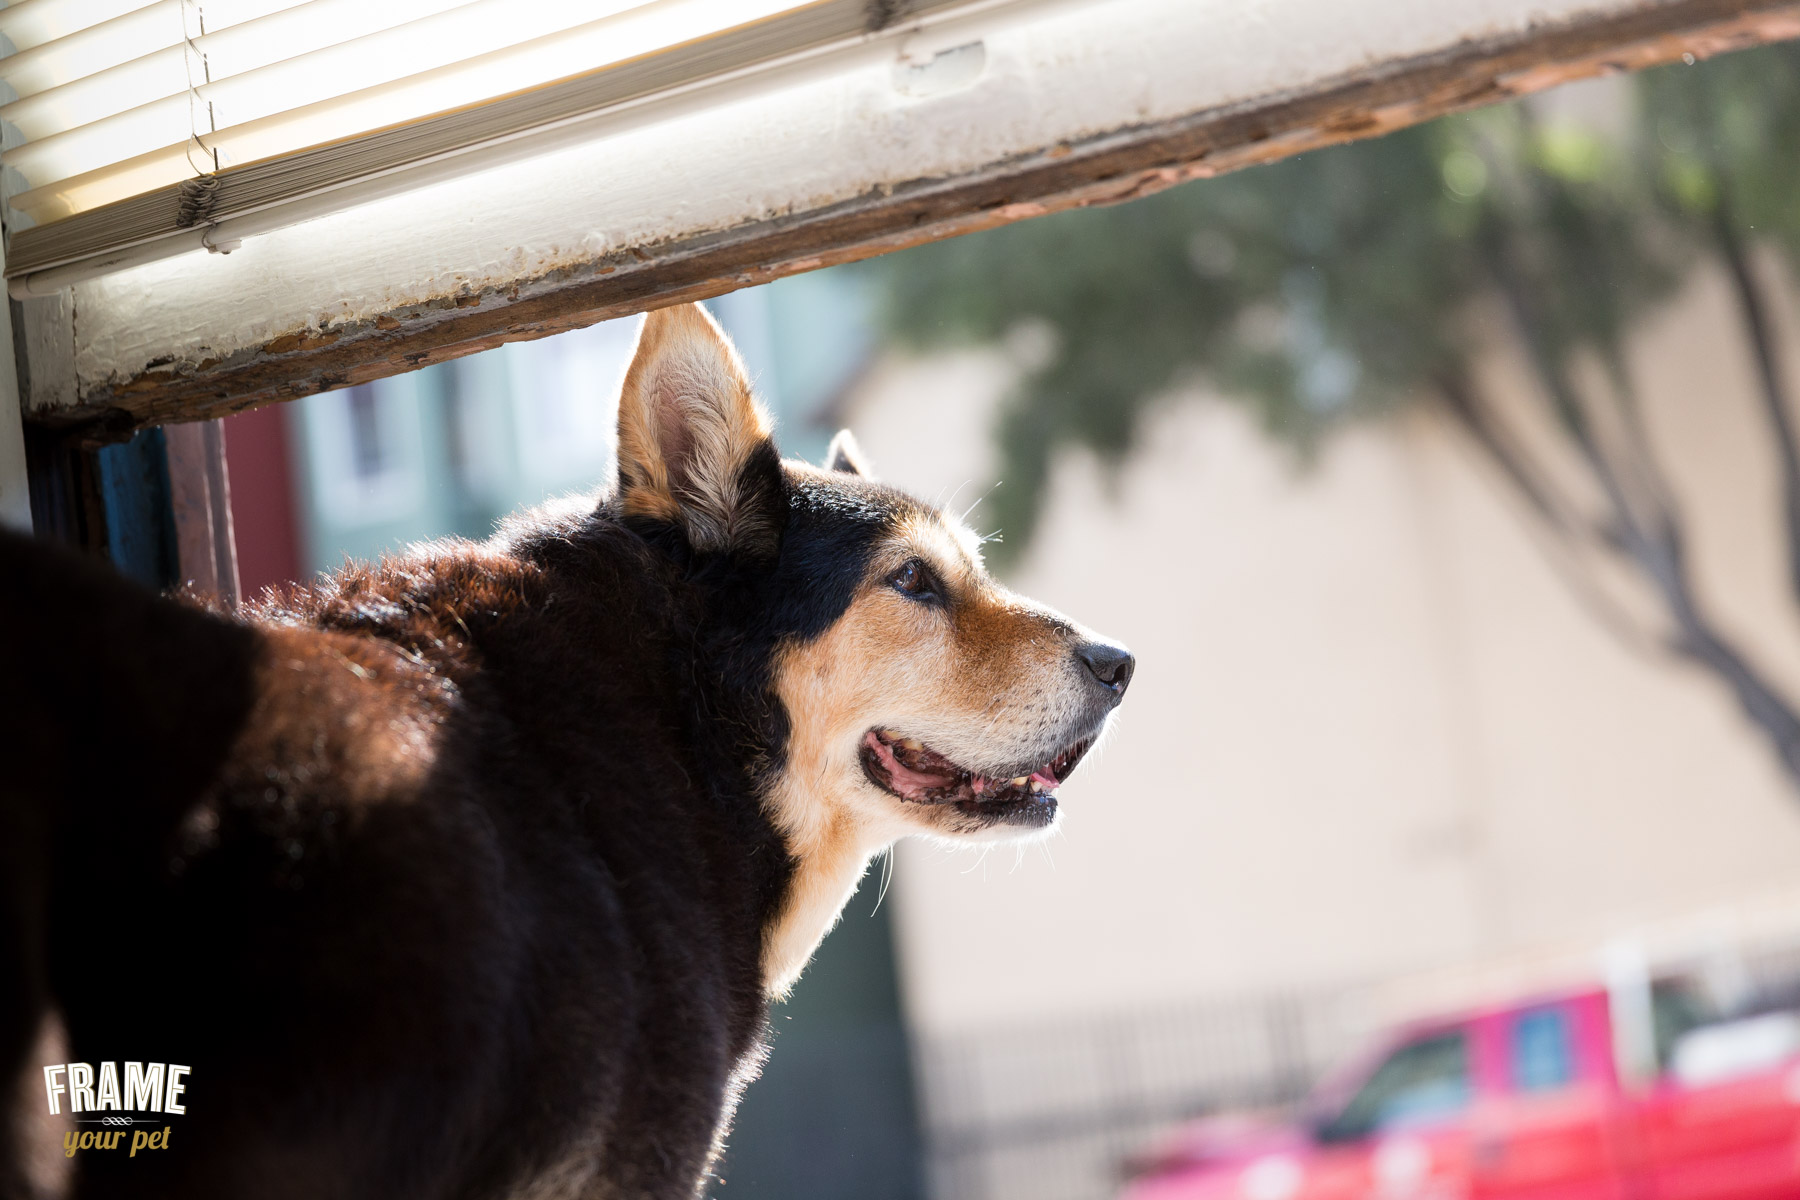 Every single day, Zoe spends most of her time patrolling the streets of San Francisco from her window.